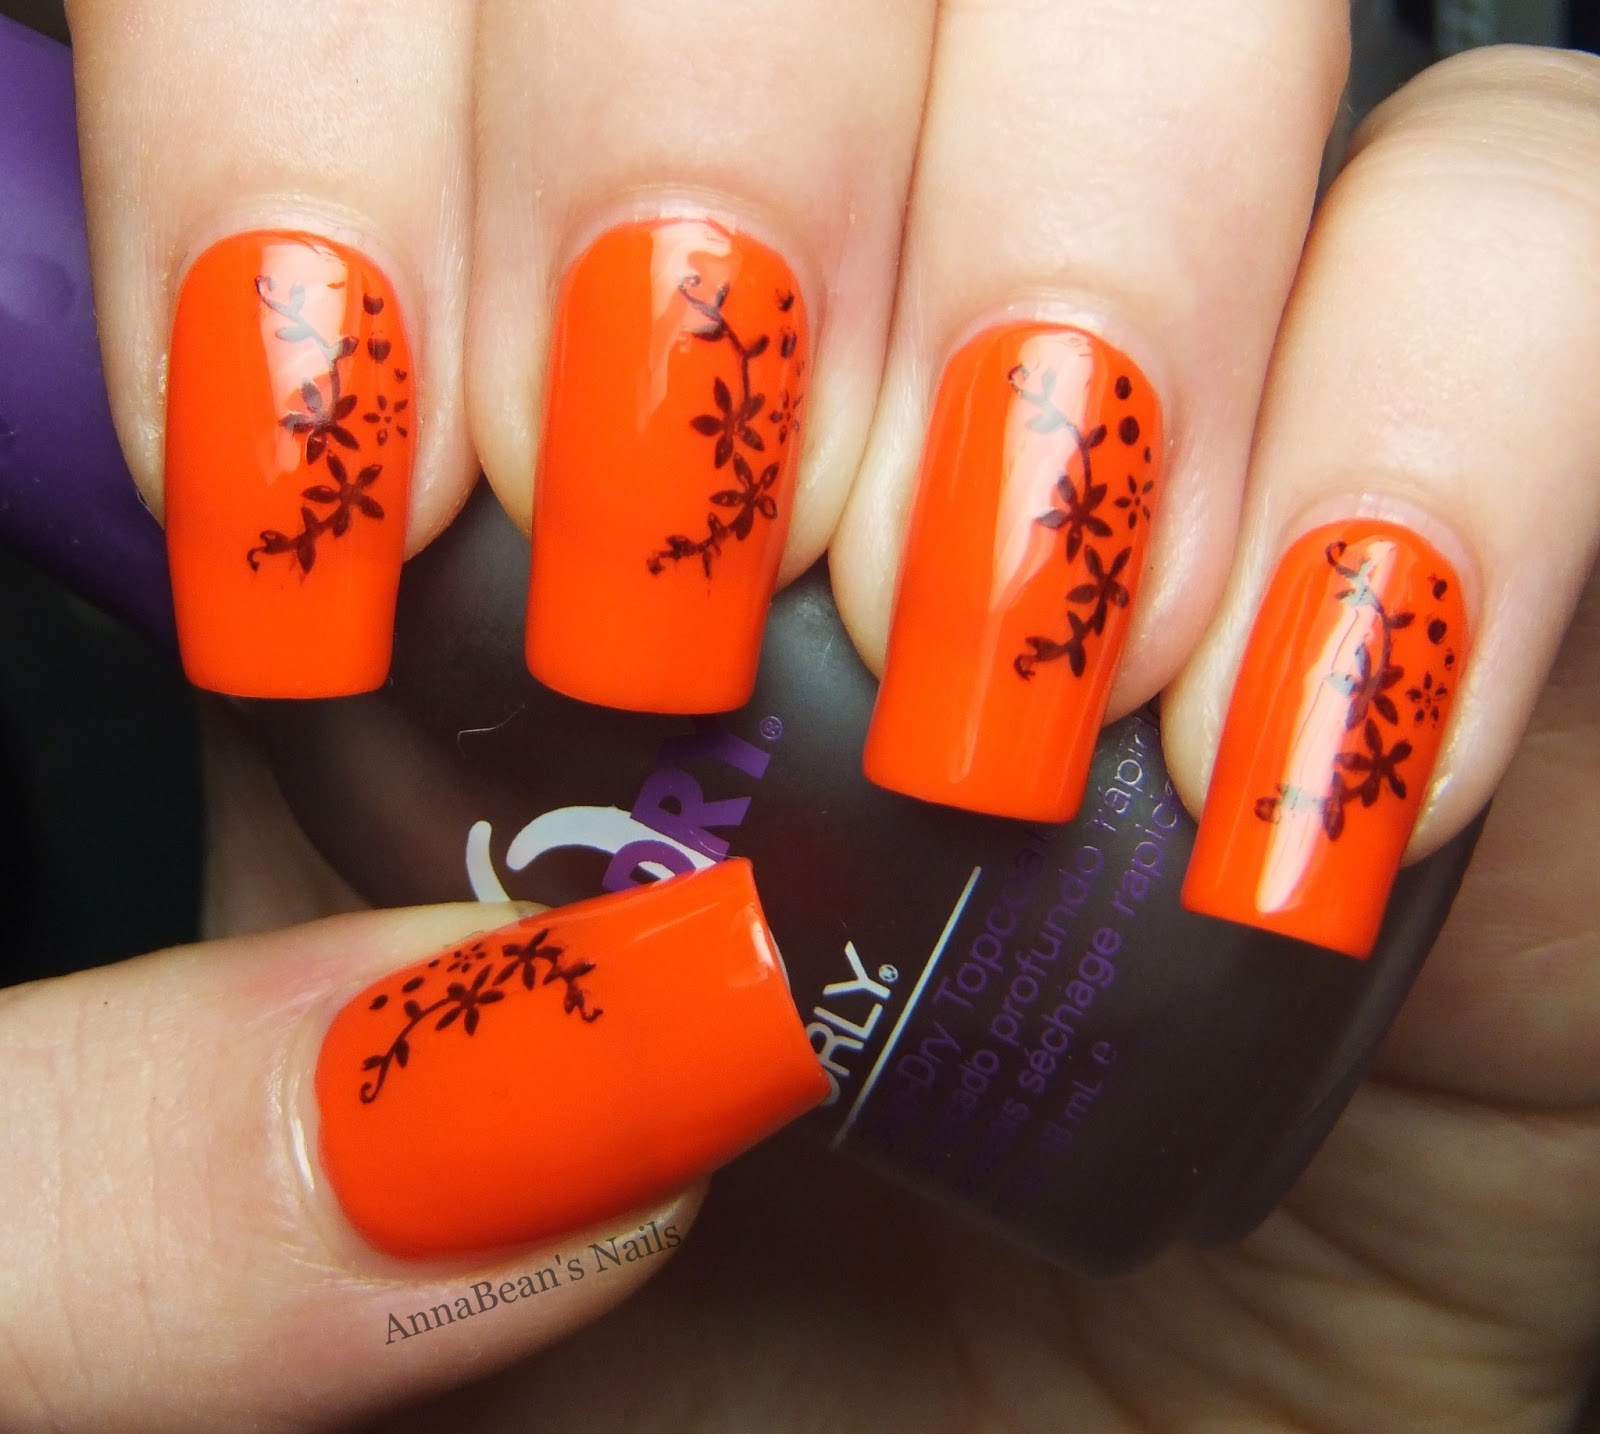 Neon Orange Which Is A Complete Nuisance To Photograph Accurately Upon I Stamped Slightly Oritental Style Floral Design Using Nails Inc Black